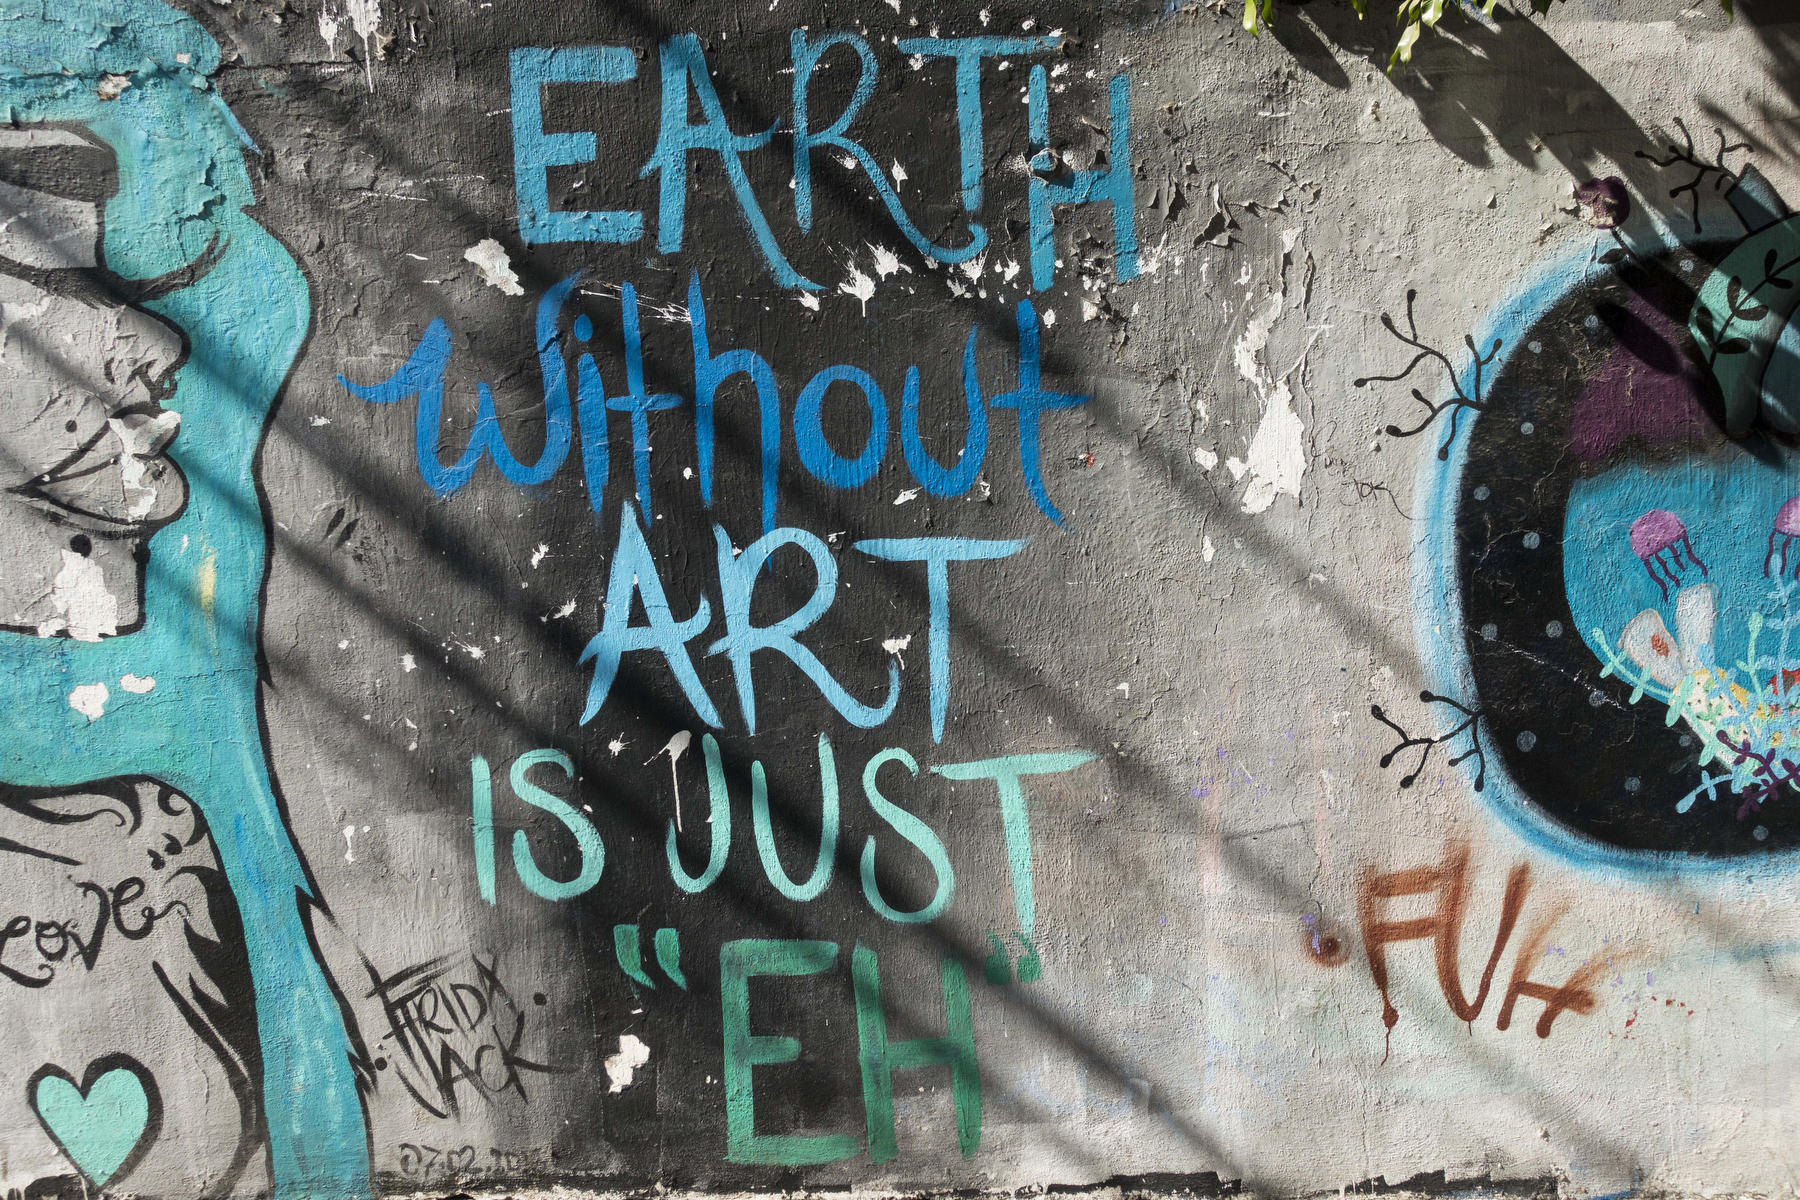 "Earth Without Art is Just ""EH"" : PUERTO VALLARTA - Wall Art & Bicycle Tour : Viviane Moos 